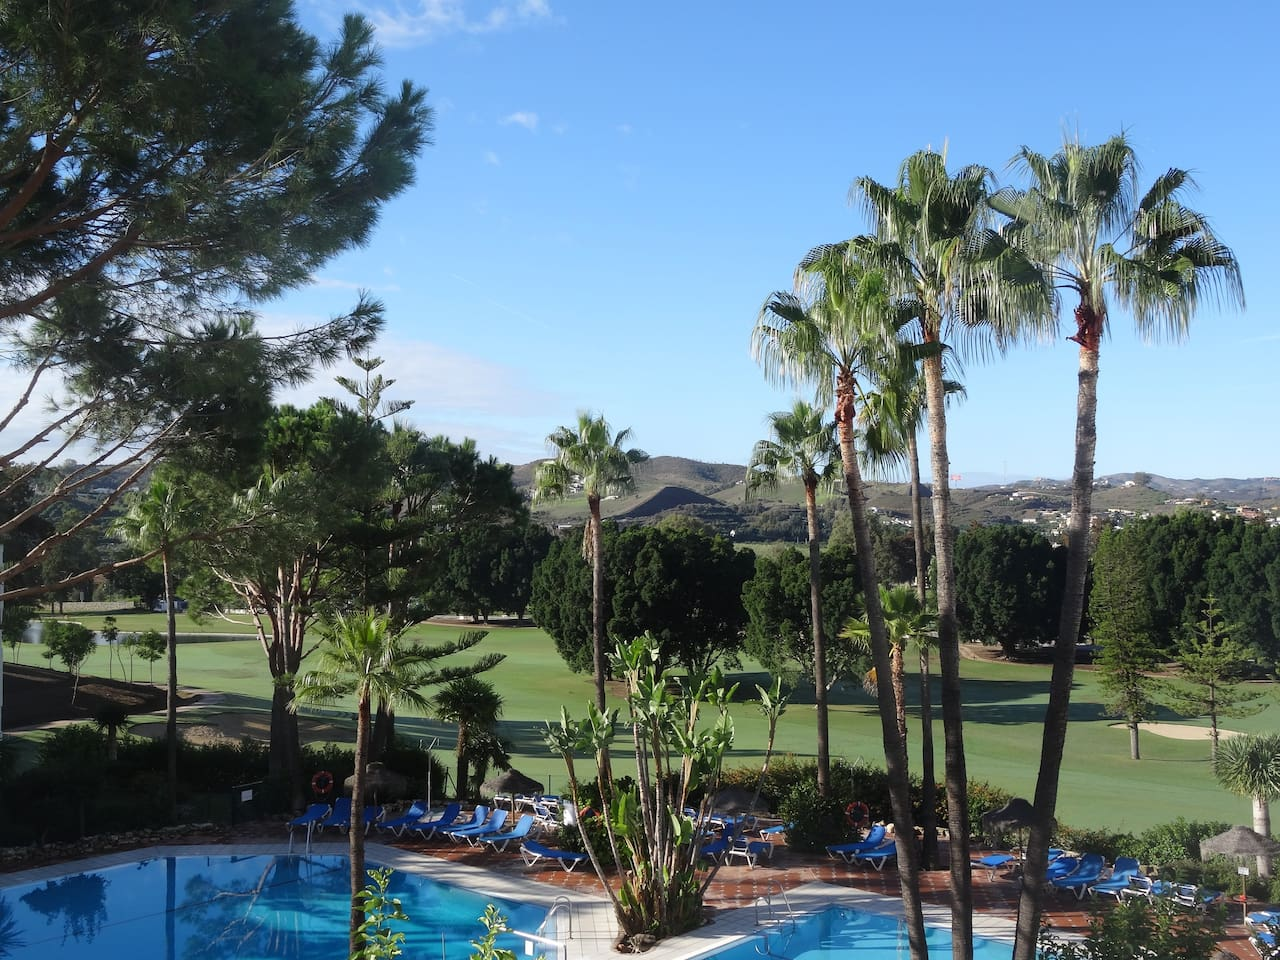 Fantastic view overlooking the pools and golf course